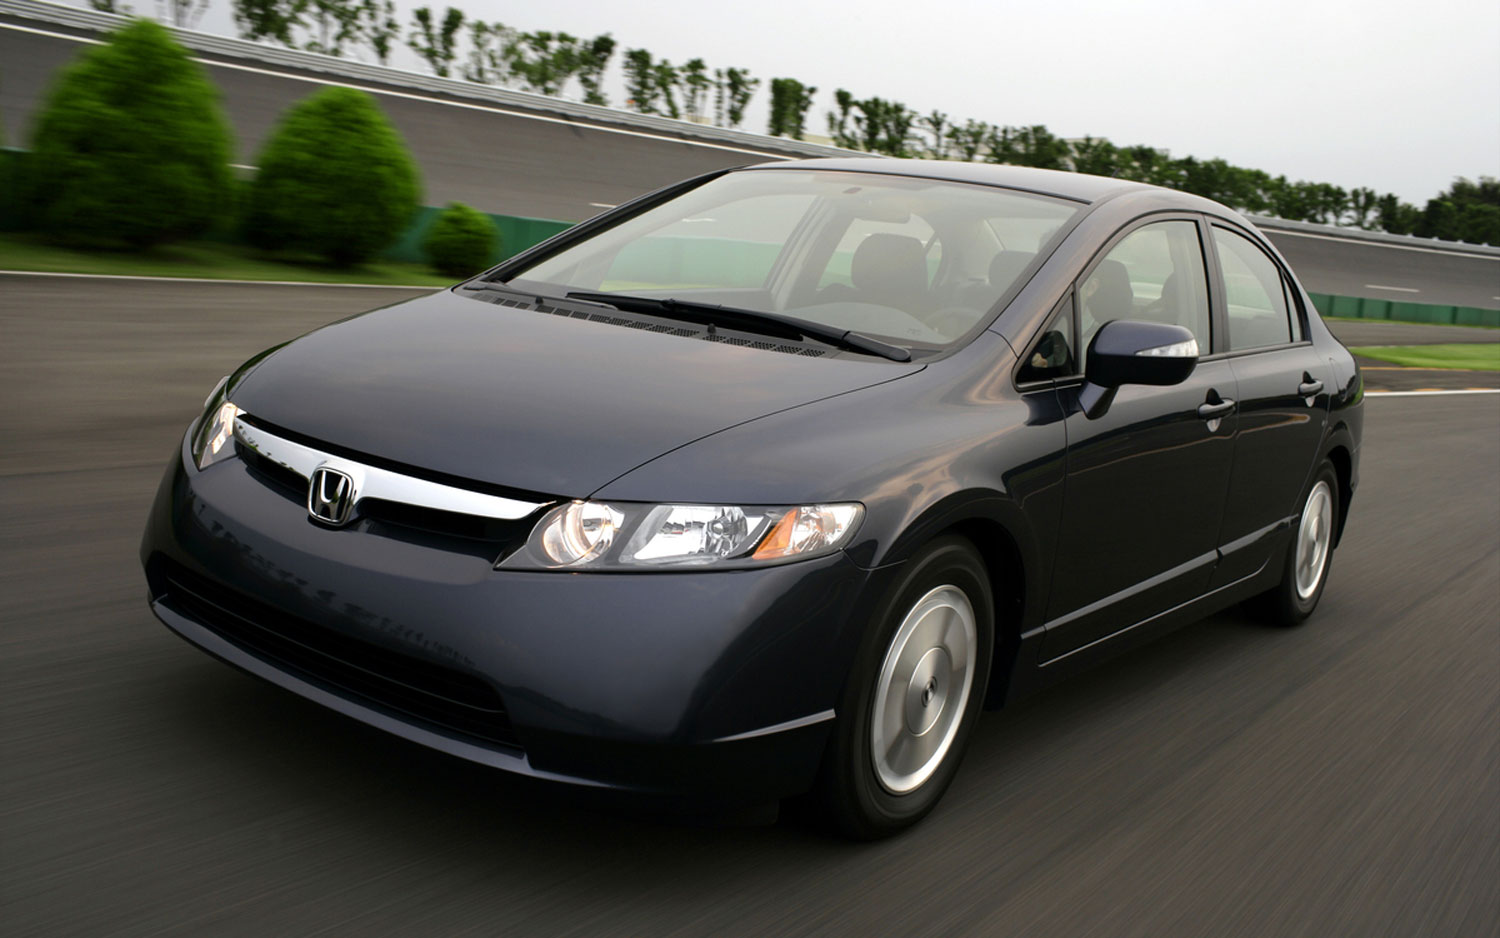 Case Closed: Honda Wins Appeal In Civic Hybrid Fuel Economy Suit